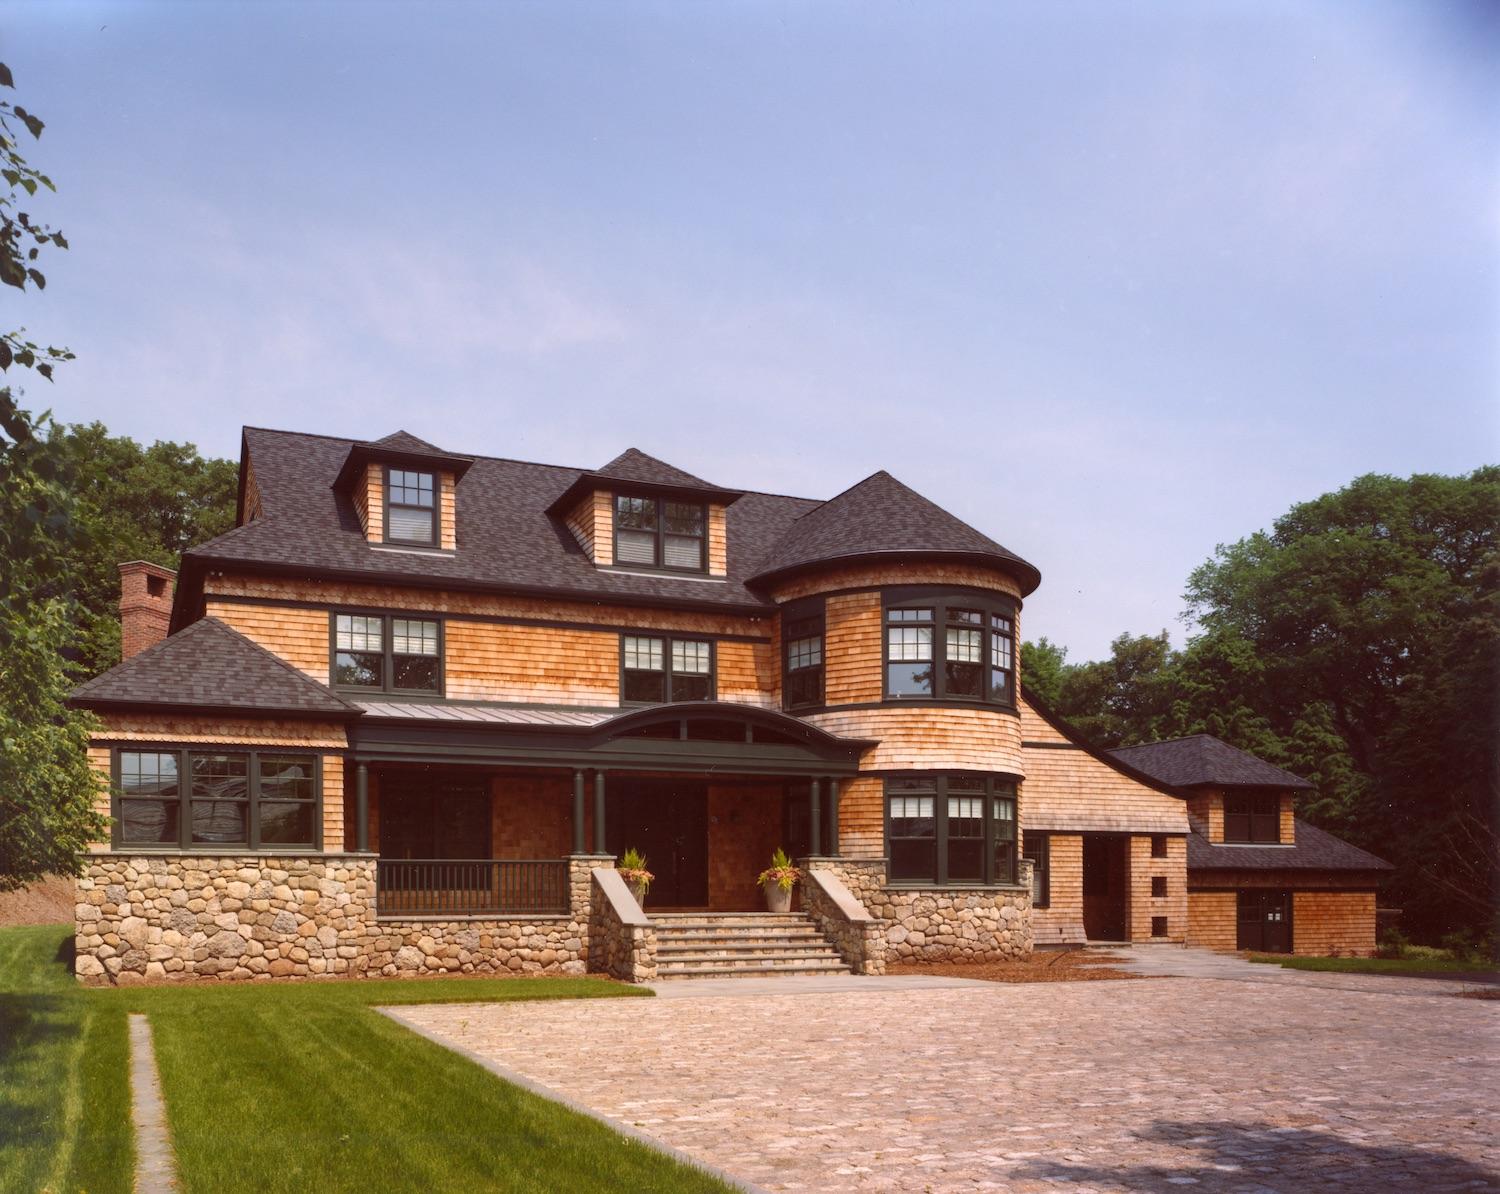 Shingle-Style MMA Home.